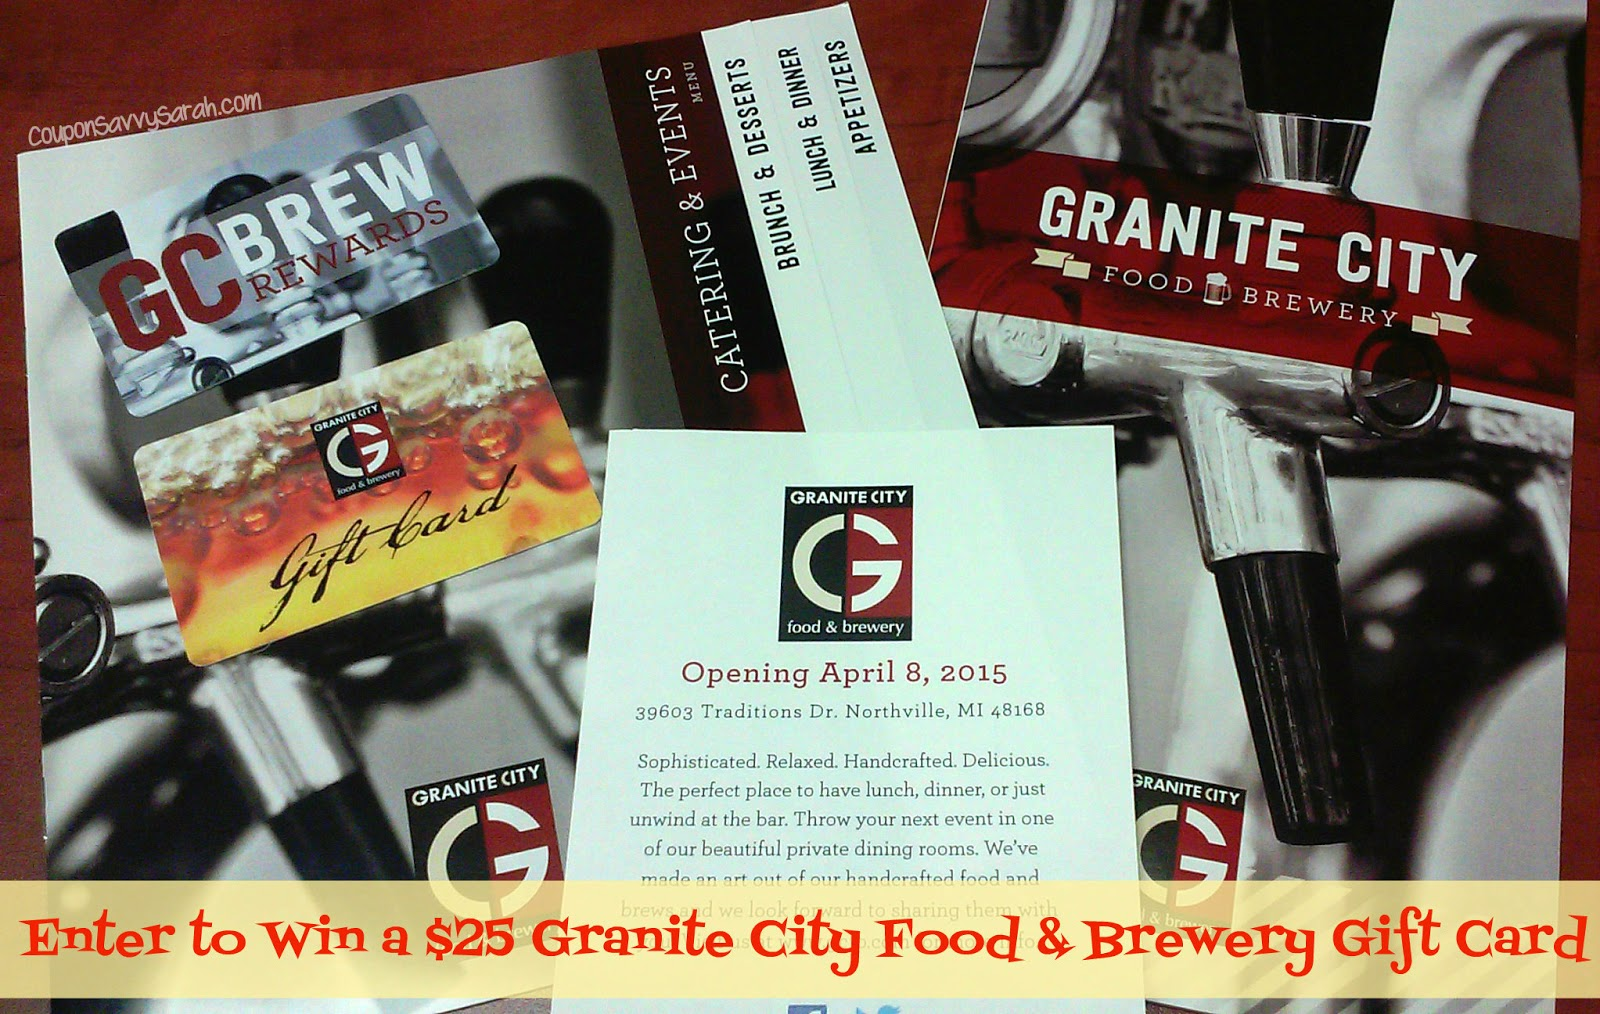 Granite City Coupons >> Granite City Brewery Brunch Coupons Royal Car Wash Wayne Nj Coupons